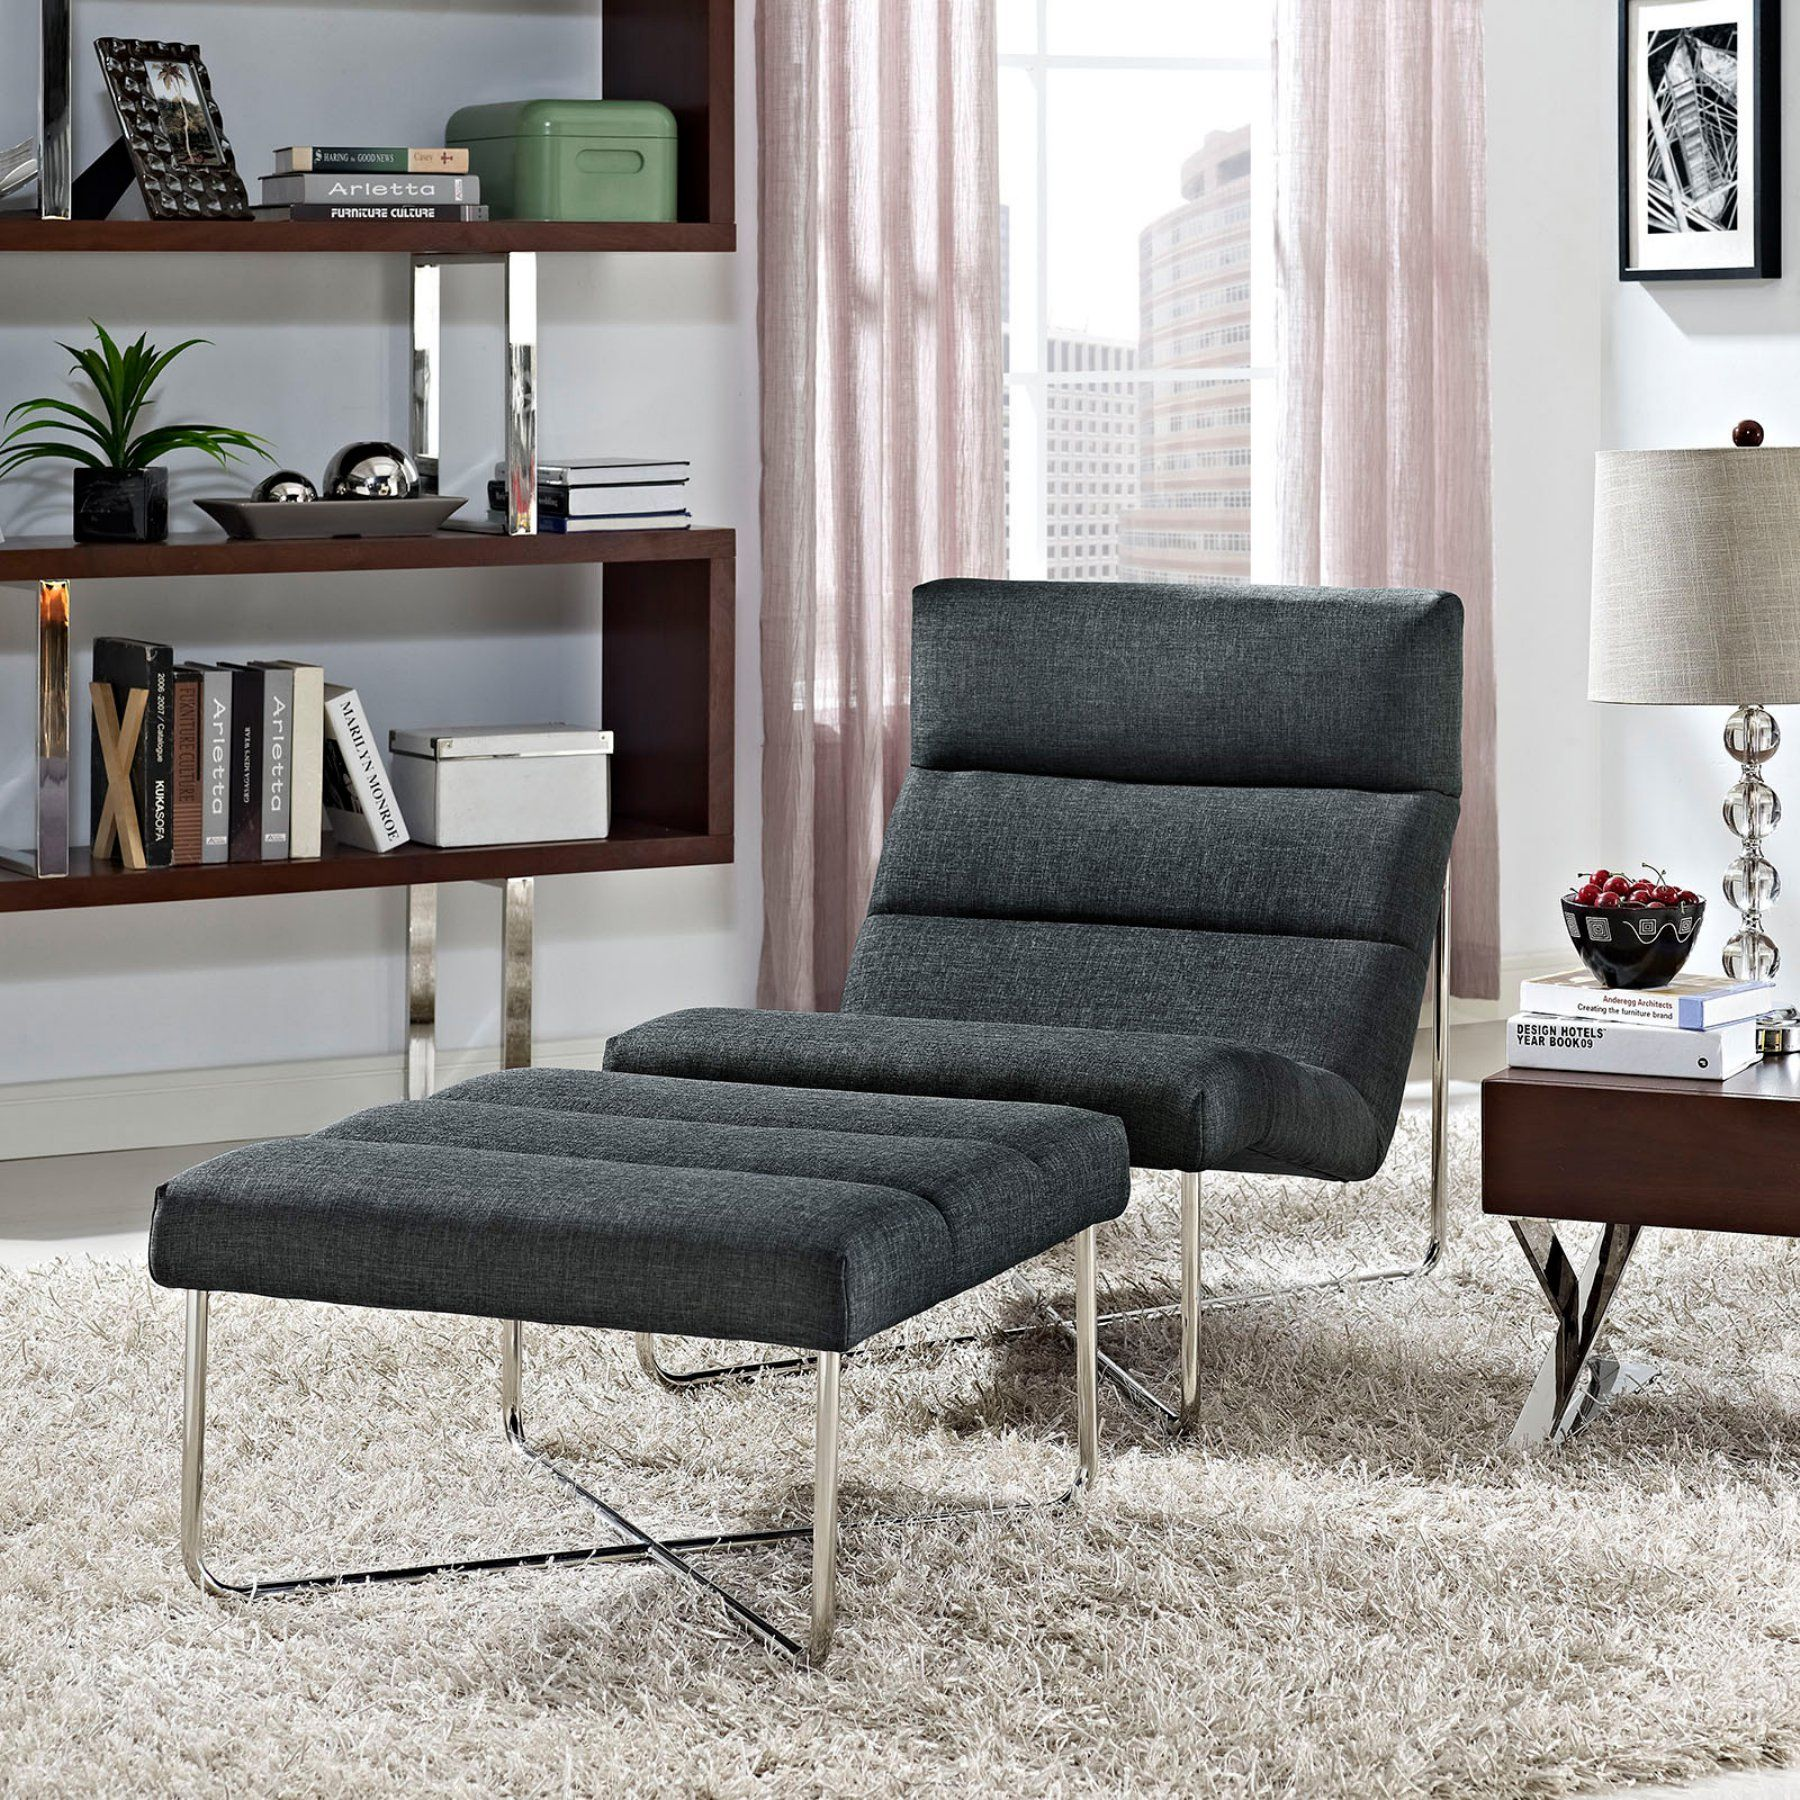 Modway Reach Living Room Fabric Accent Chair and Ottoman Set